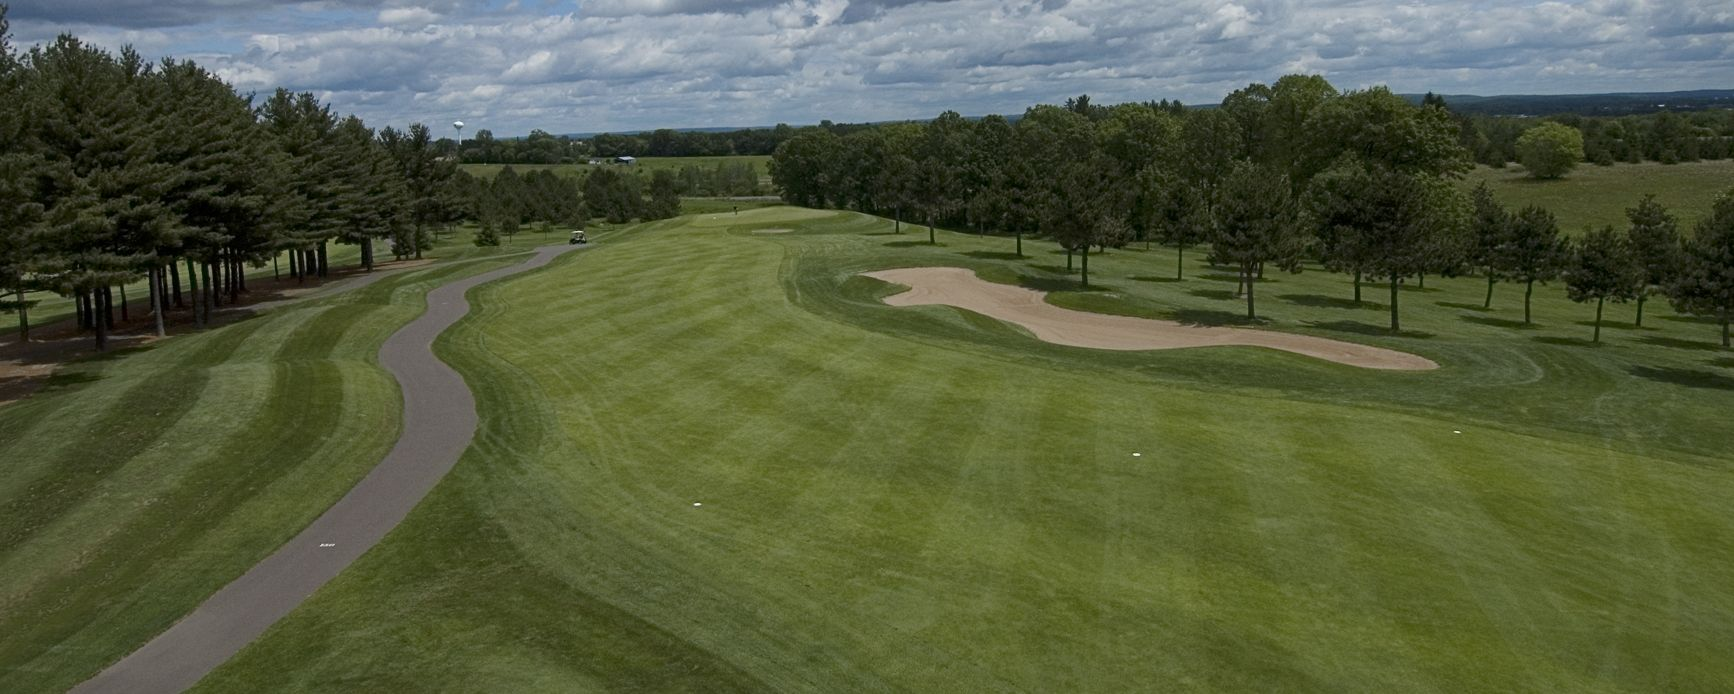 Turtleback Golf Course In Rice Lake Wi Golf Courses Golf Outdoor